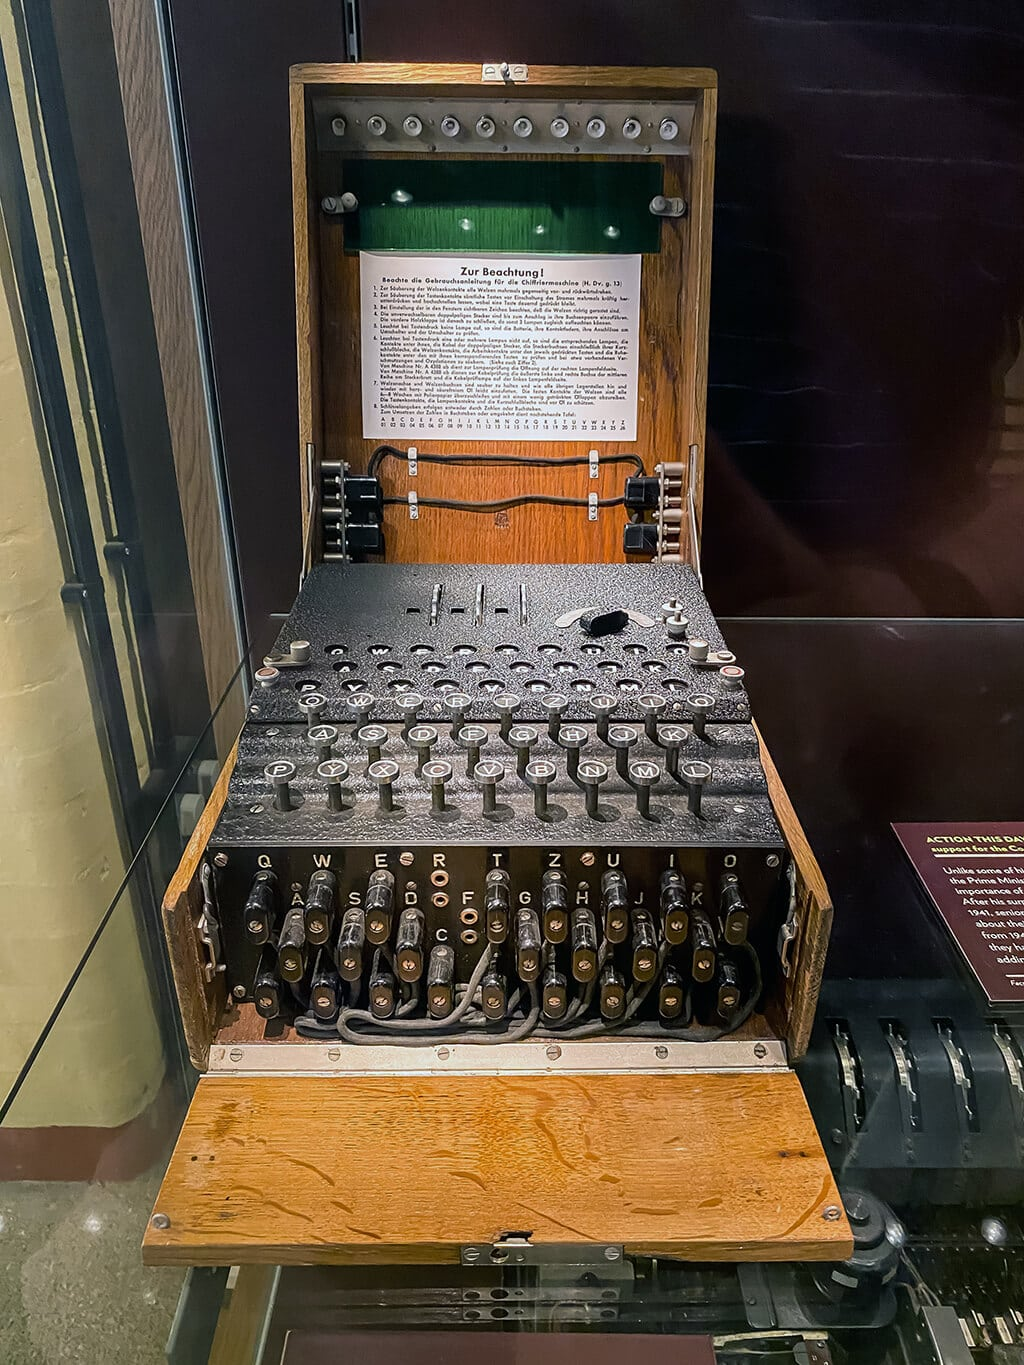 enigma machine at bletchley park